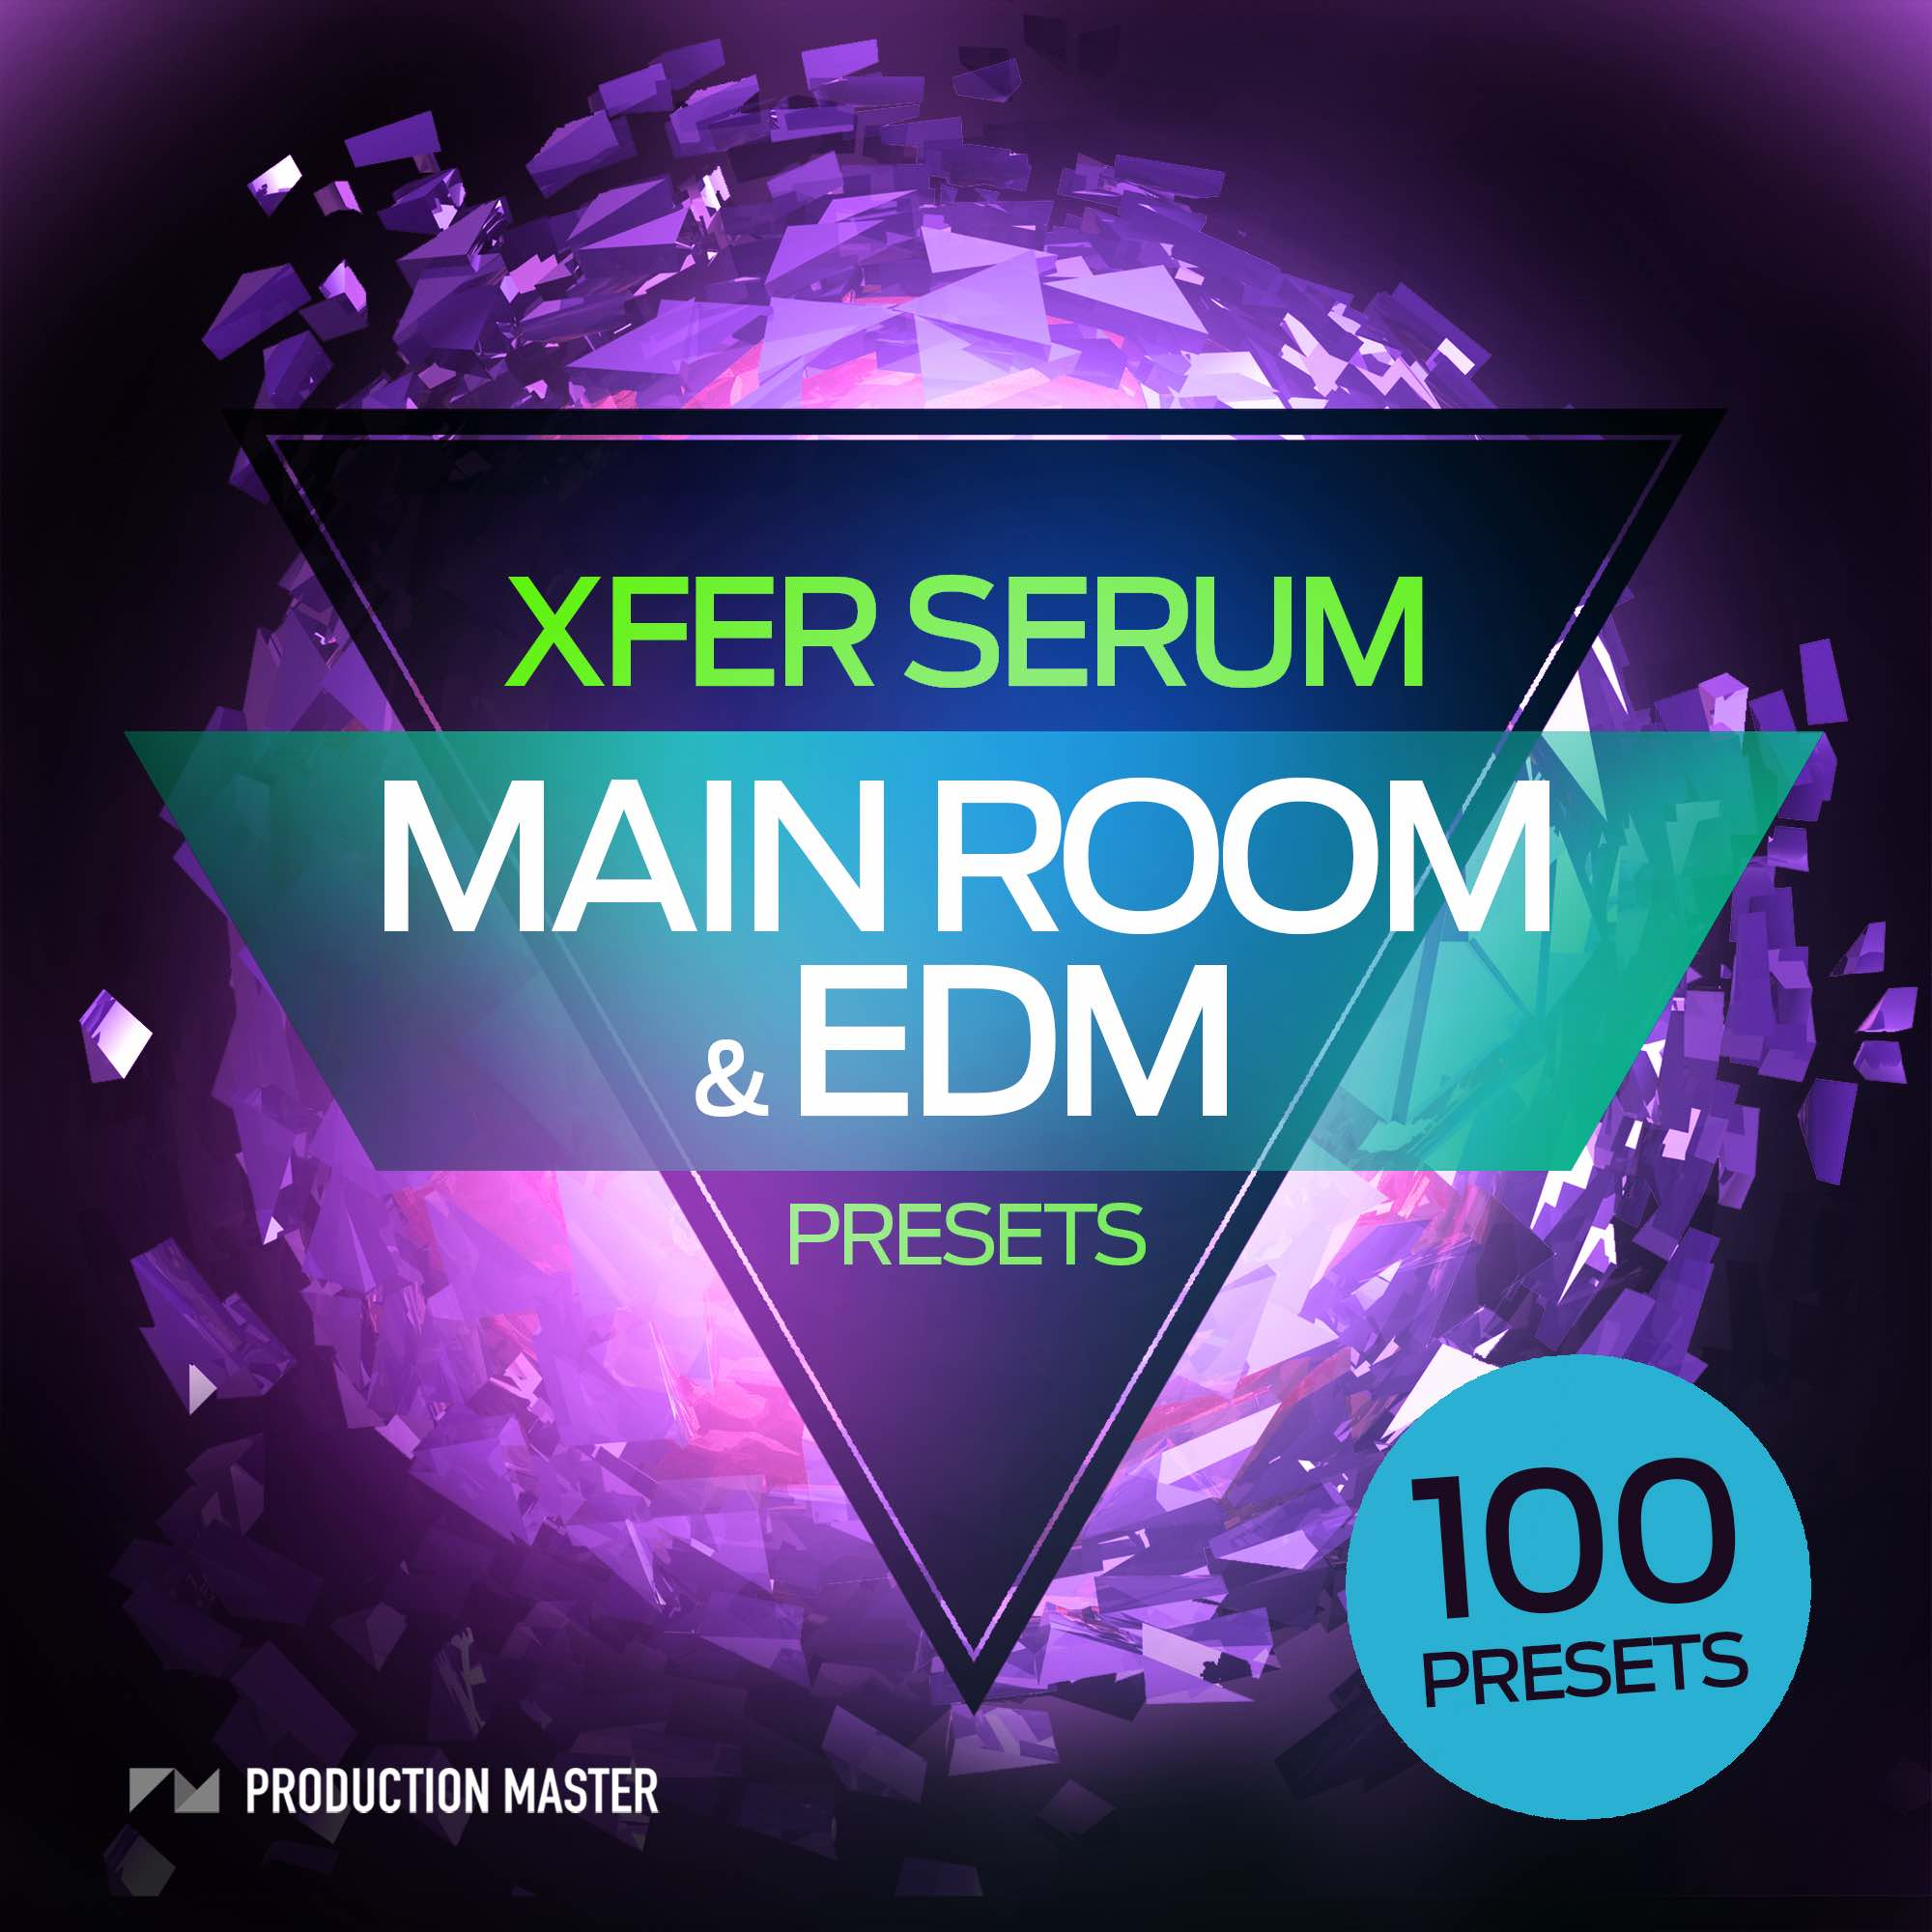 XFER SERUM - MAIN ROOM & EDM PRESETS - PRODUCTION MASTER b